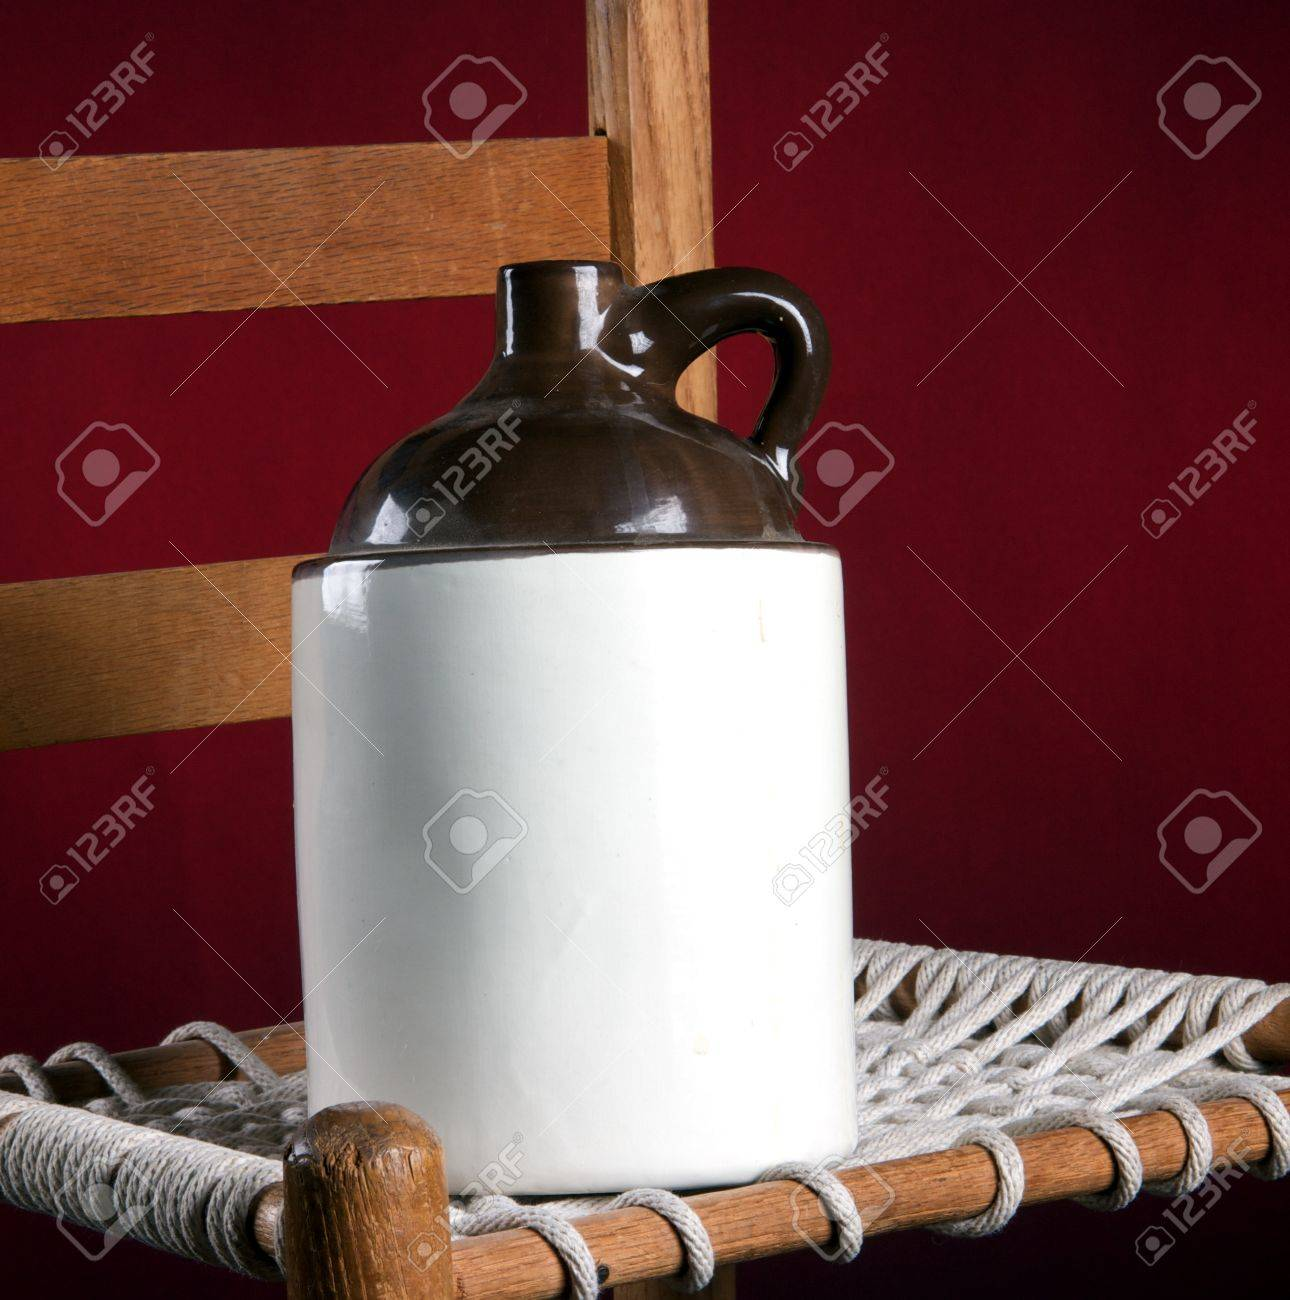 rope bottom chair inside swing an old pottery ceramic country jug and on a red background in the